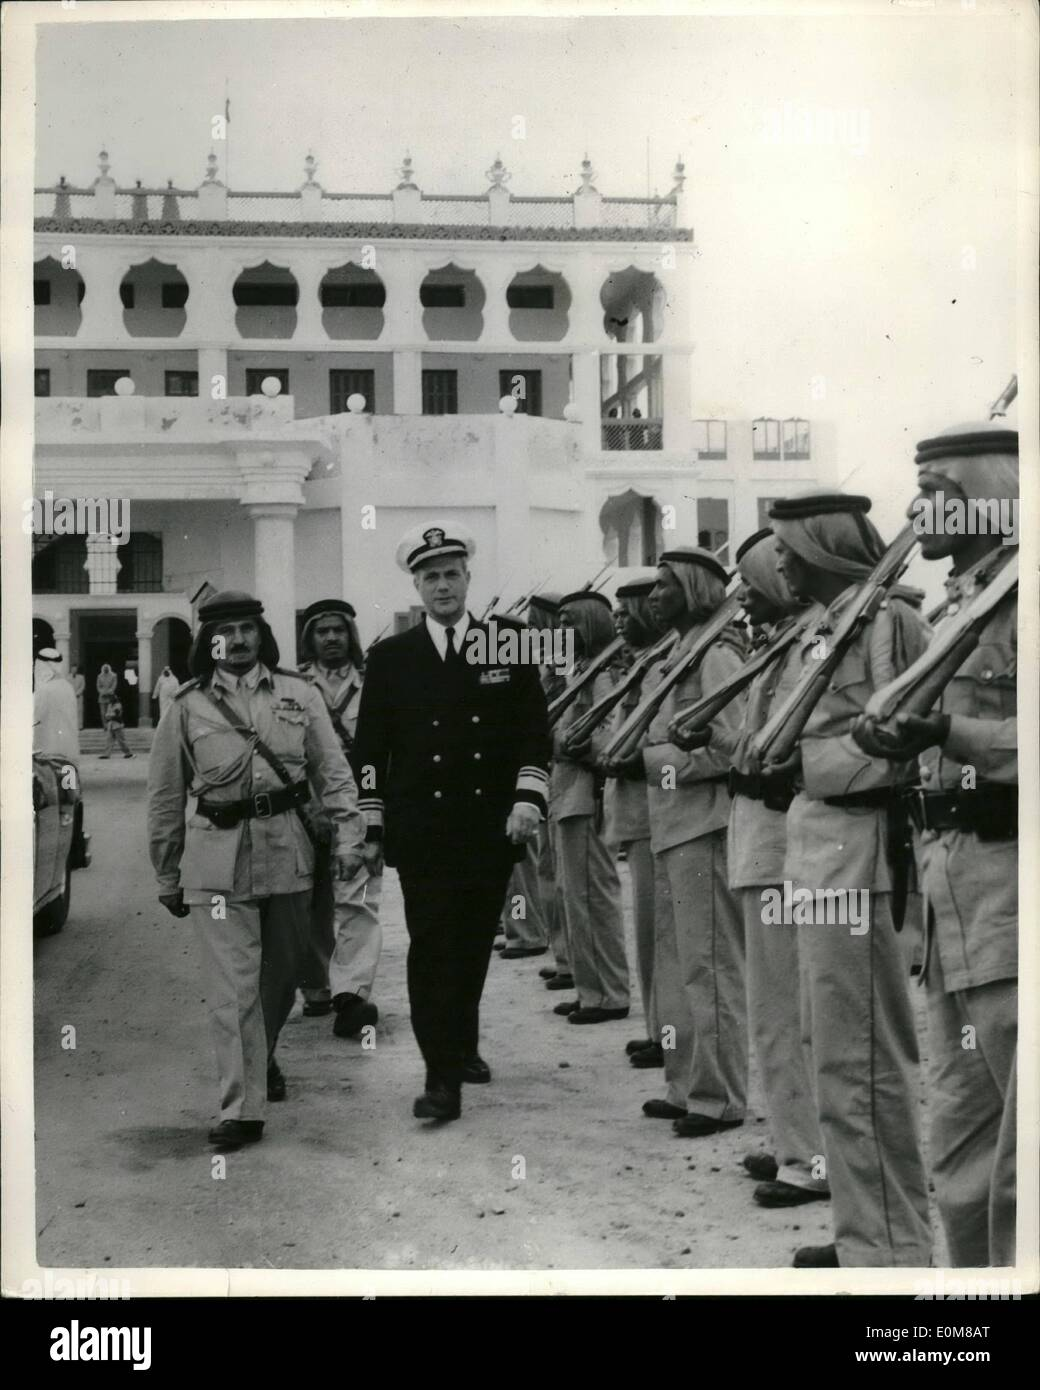 Dec. 12, 1953 - Unites State Naval Chief Visits King IBN Abdul Aziz of Saudi Arabia: Vice Admiral Jerauld Wright USN - Commander in Chief of United States Naval Forces, Eastern Atlantic and Mediterranean, inspect guards of honour at the Winter Palace, Jidda Saudi Arabia....The Admiral Aziz of Saudi Arabia during tour of Mediterranean and Middle East. - Stock Image